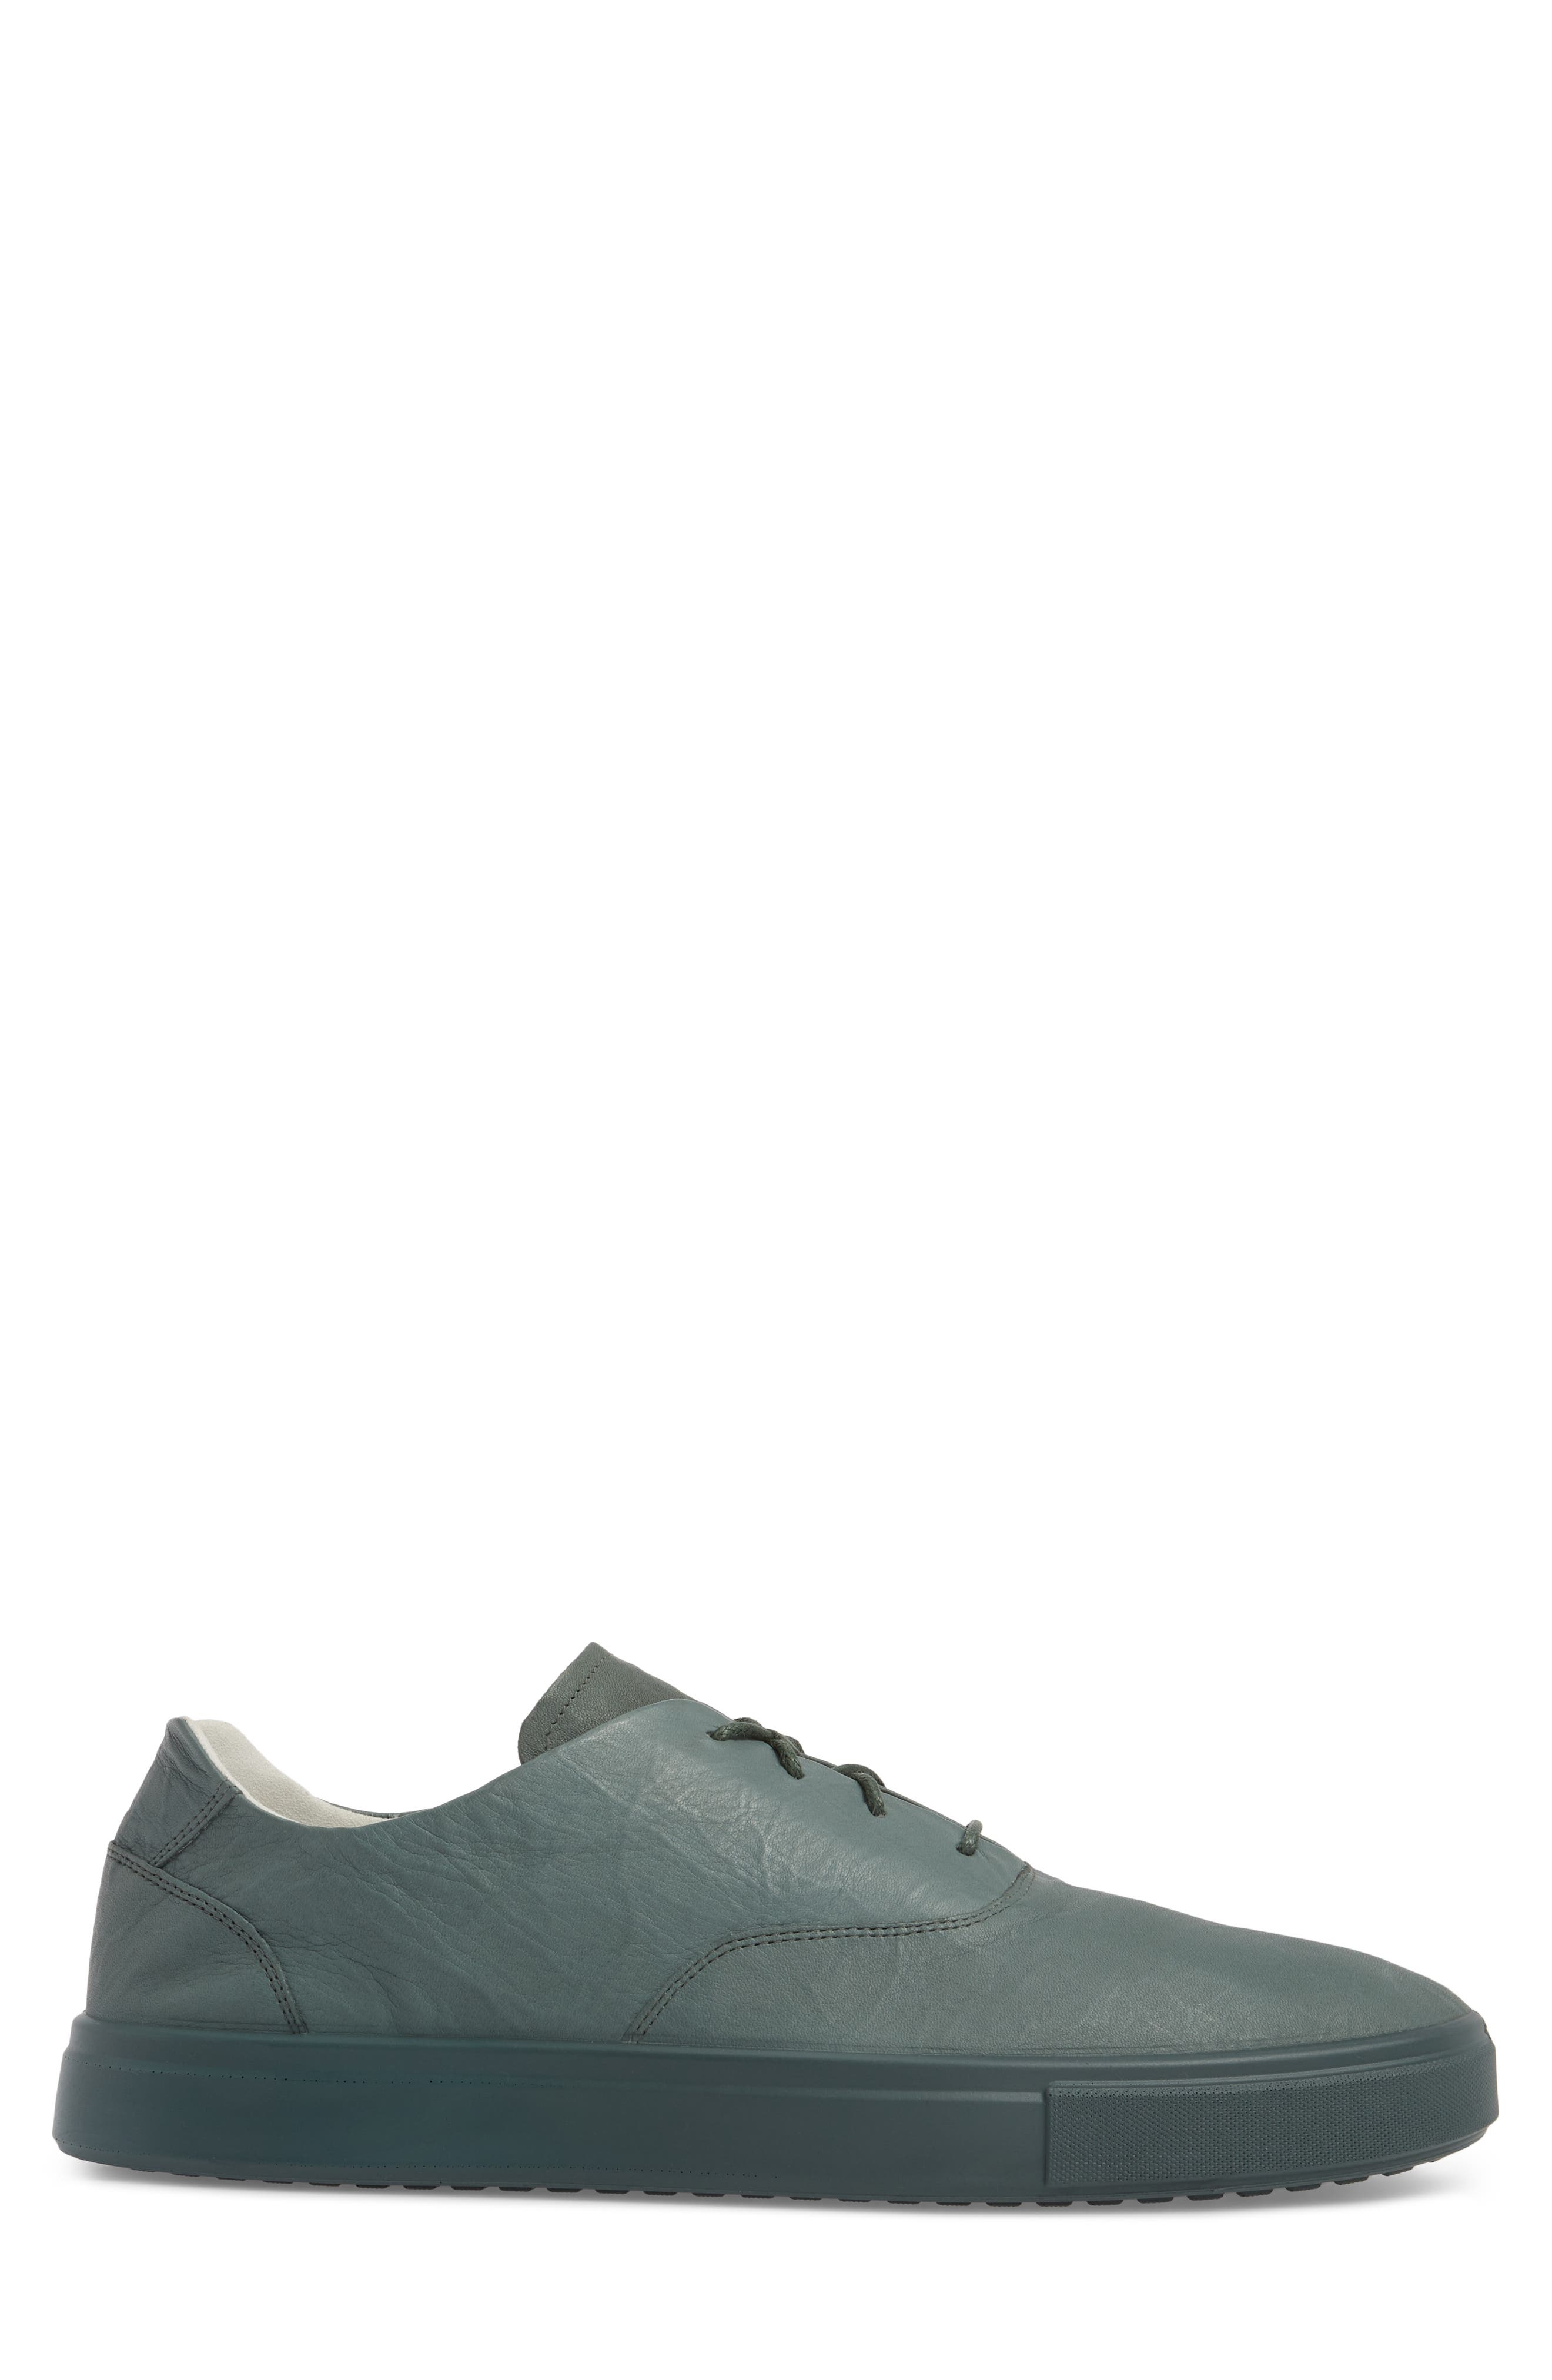 Kyle Low Top Sneaker,                             Alternate thumbnail 3, color,                             Military Sage Leather